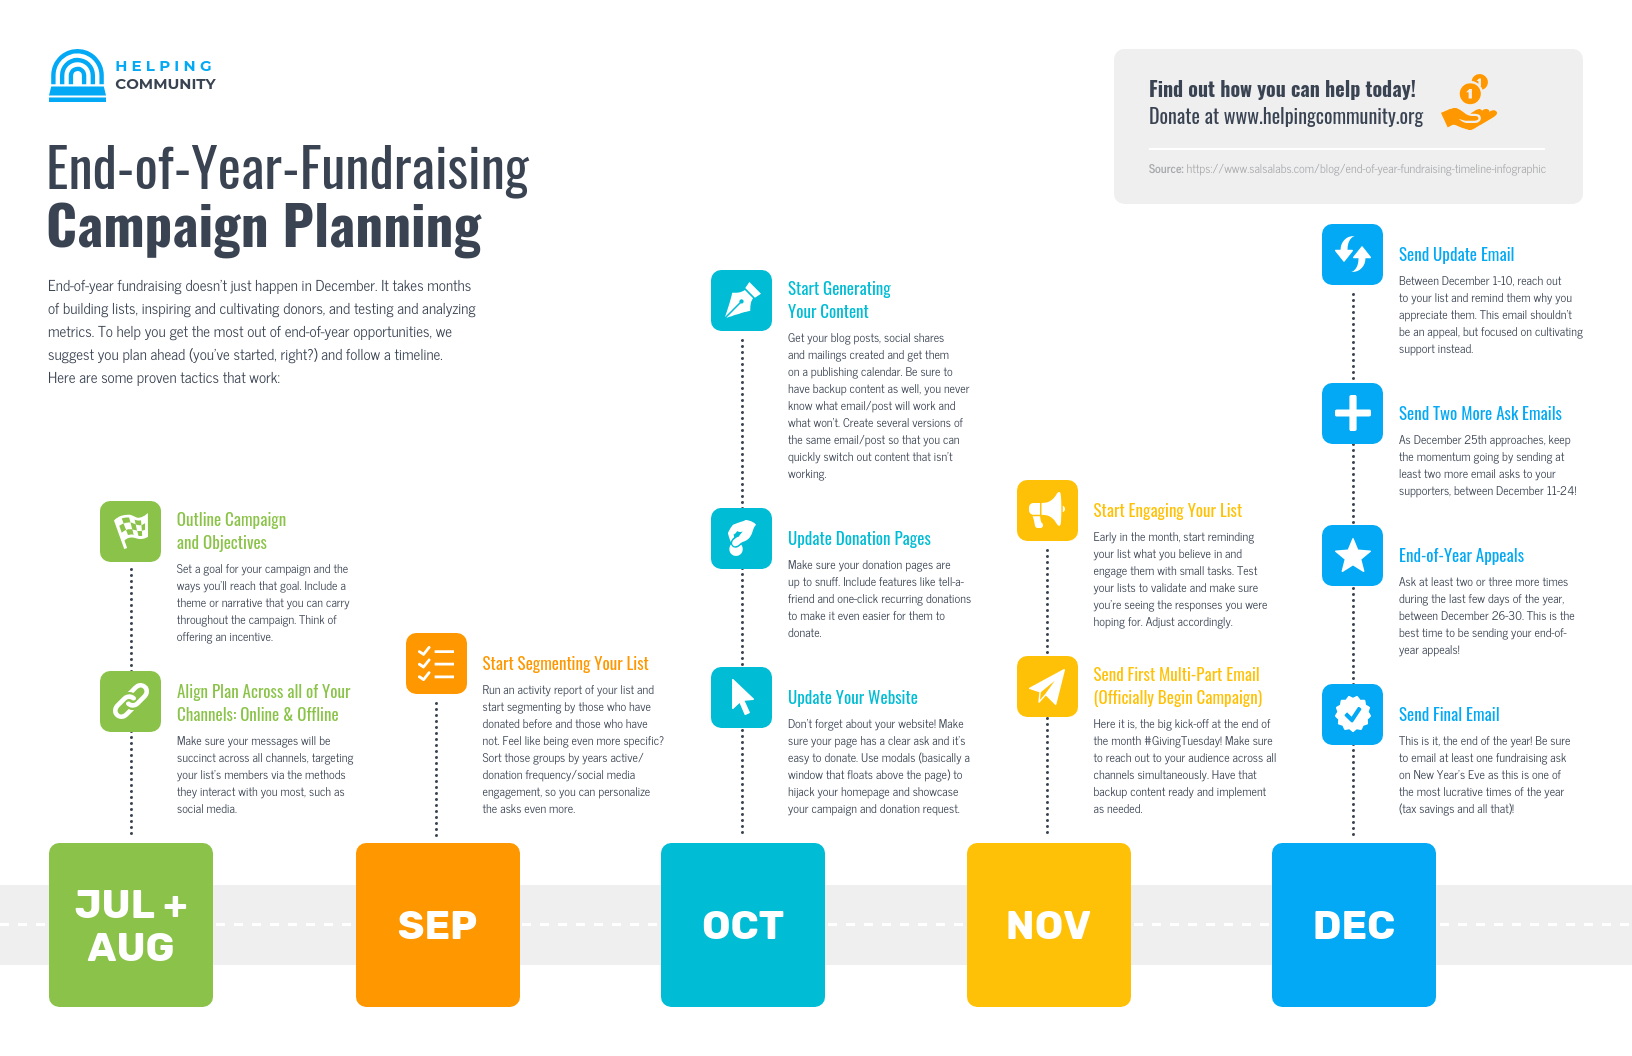 End of Year Fundraising Campaign Planning Timeline Infographic Template